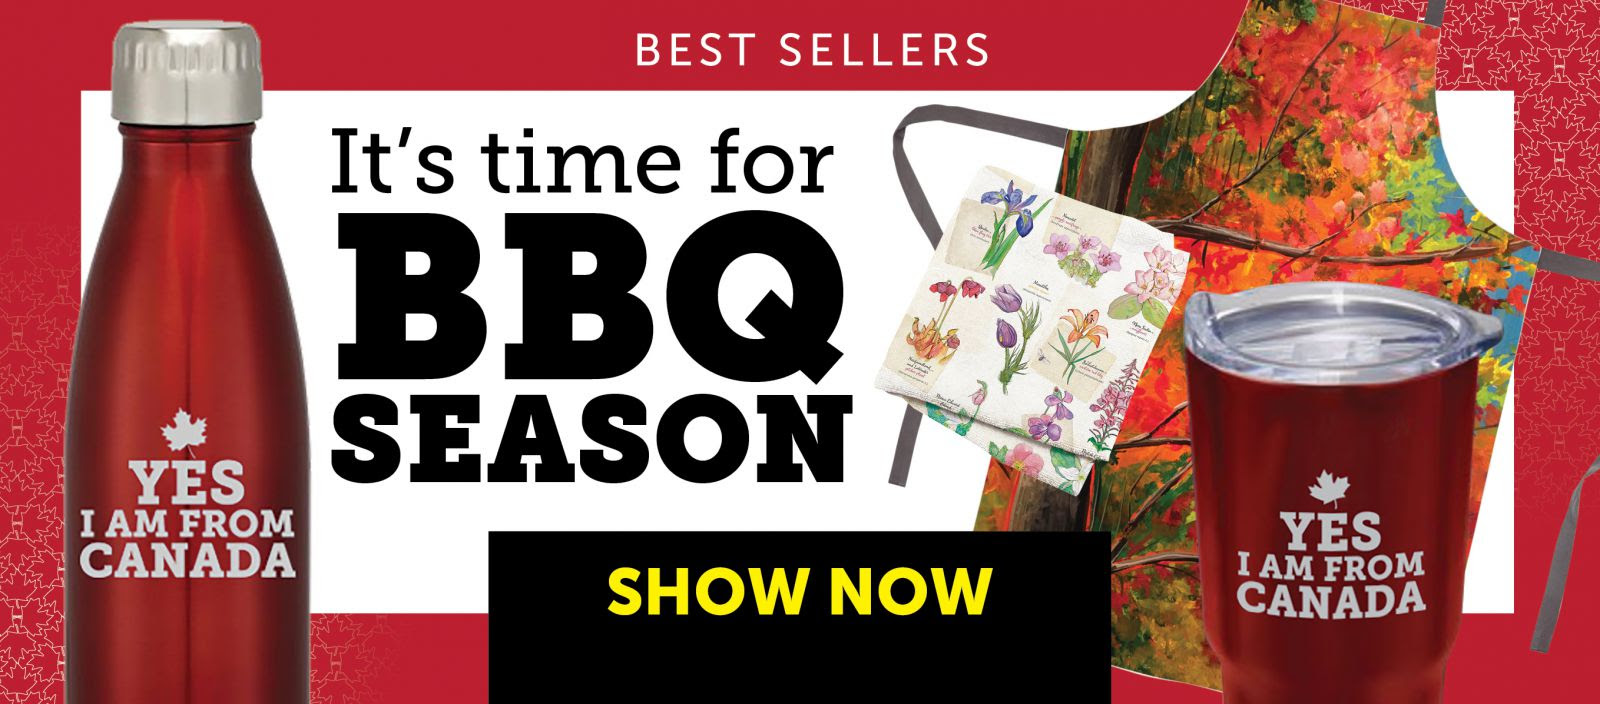 Celebrating Canada | BBQ Season is on now!